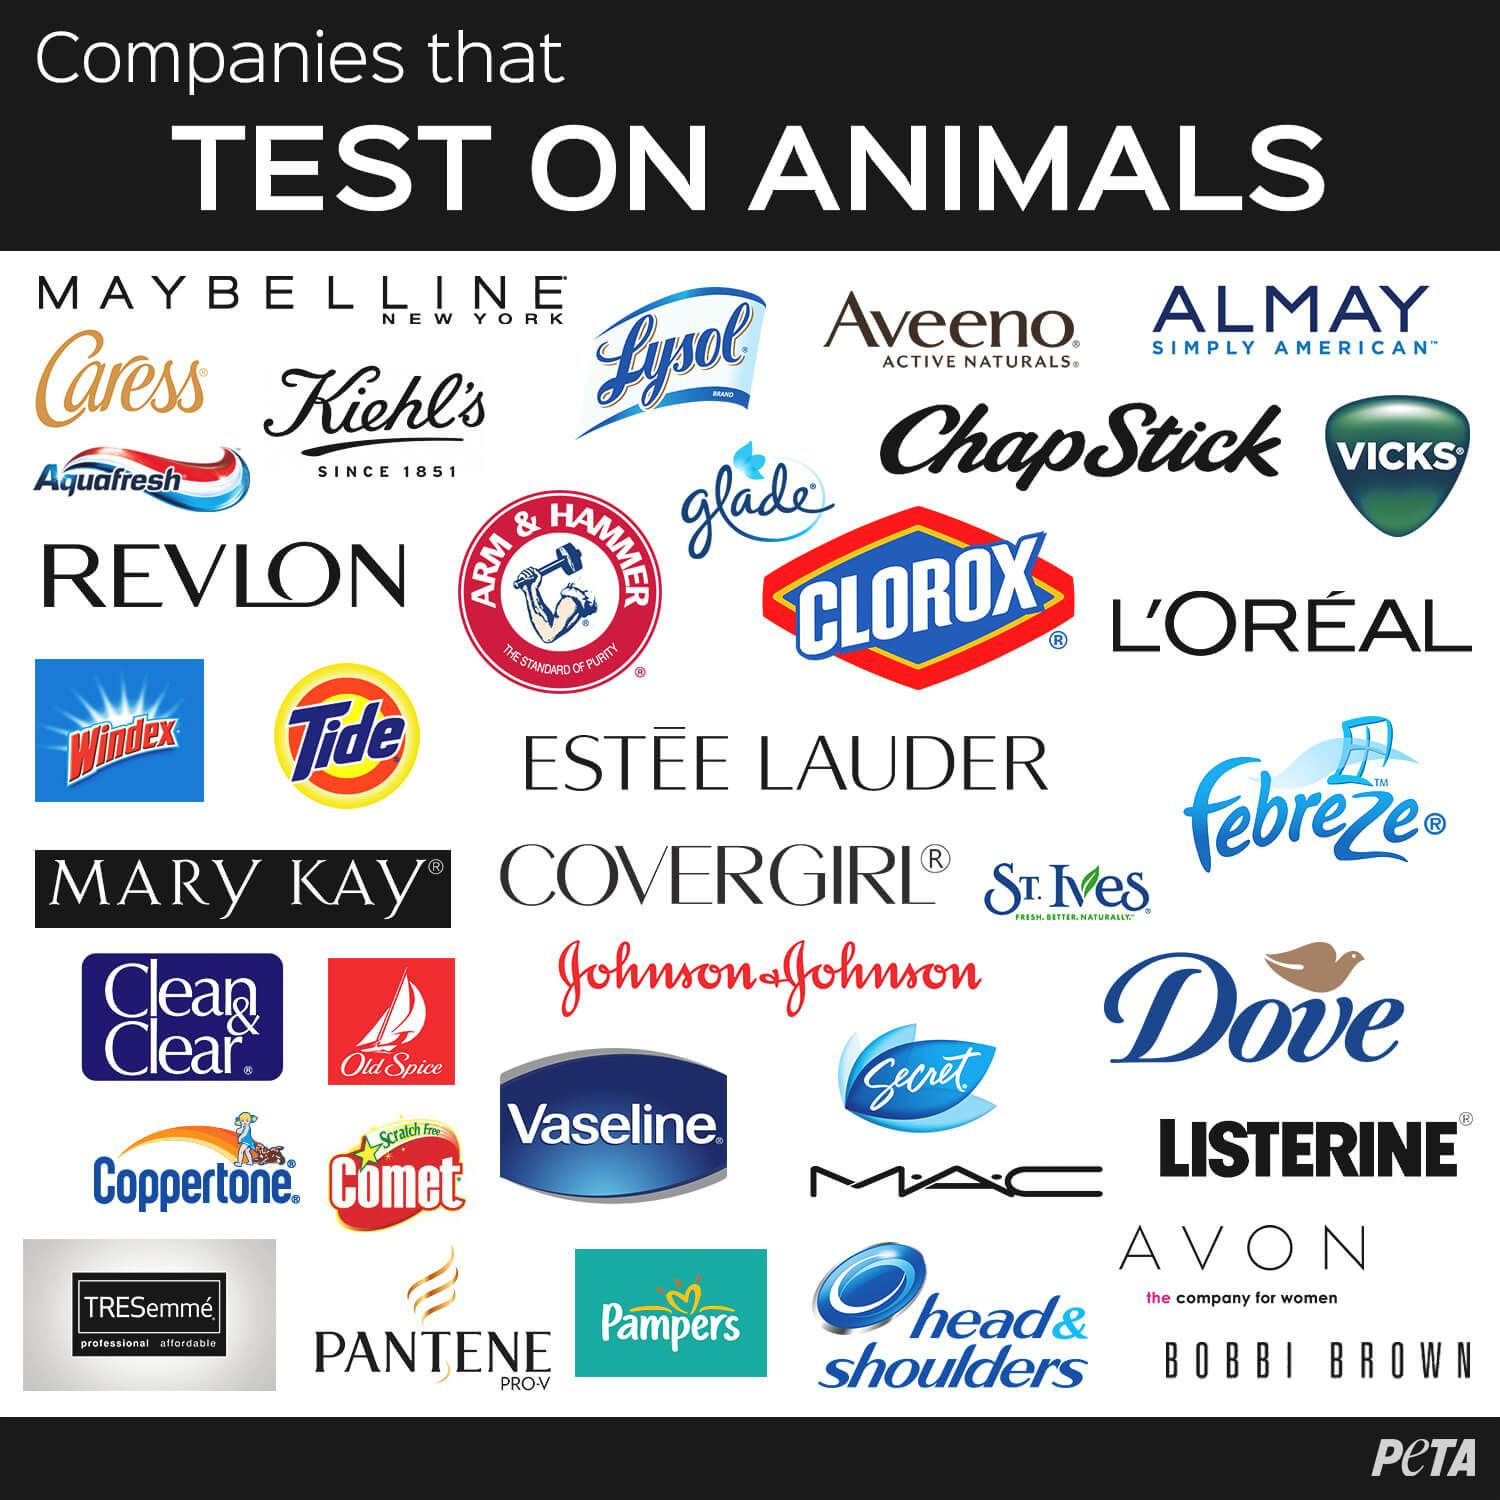 20 Cruelty Free Products ideas   cruelty free, cruelty free makeup ...